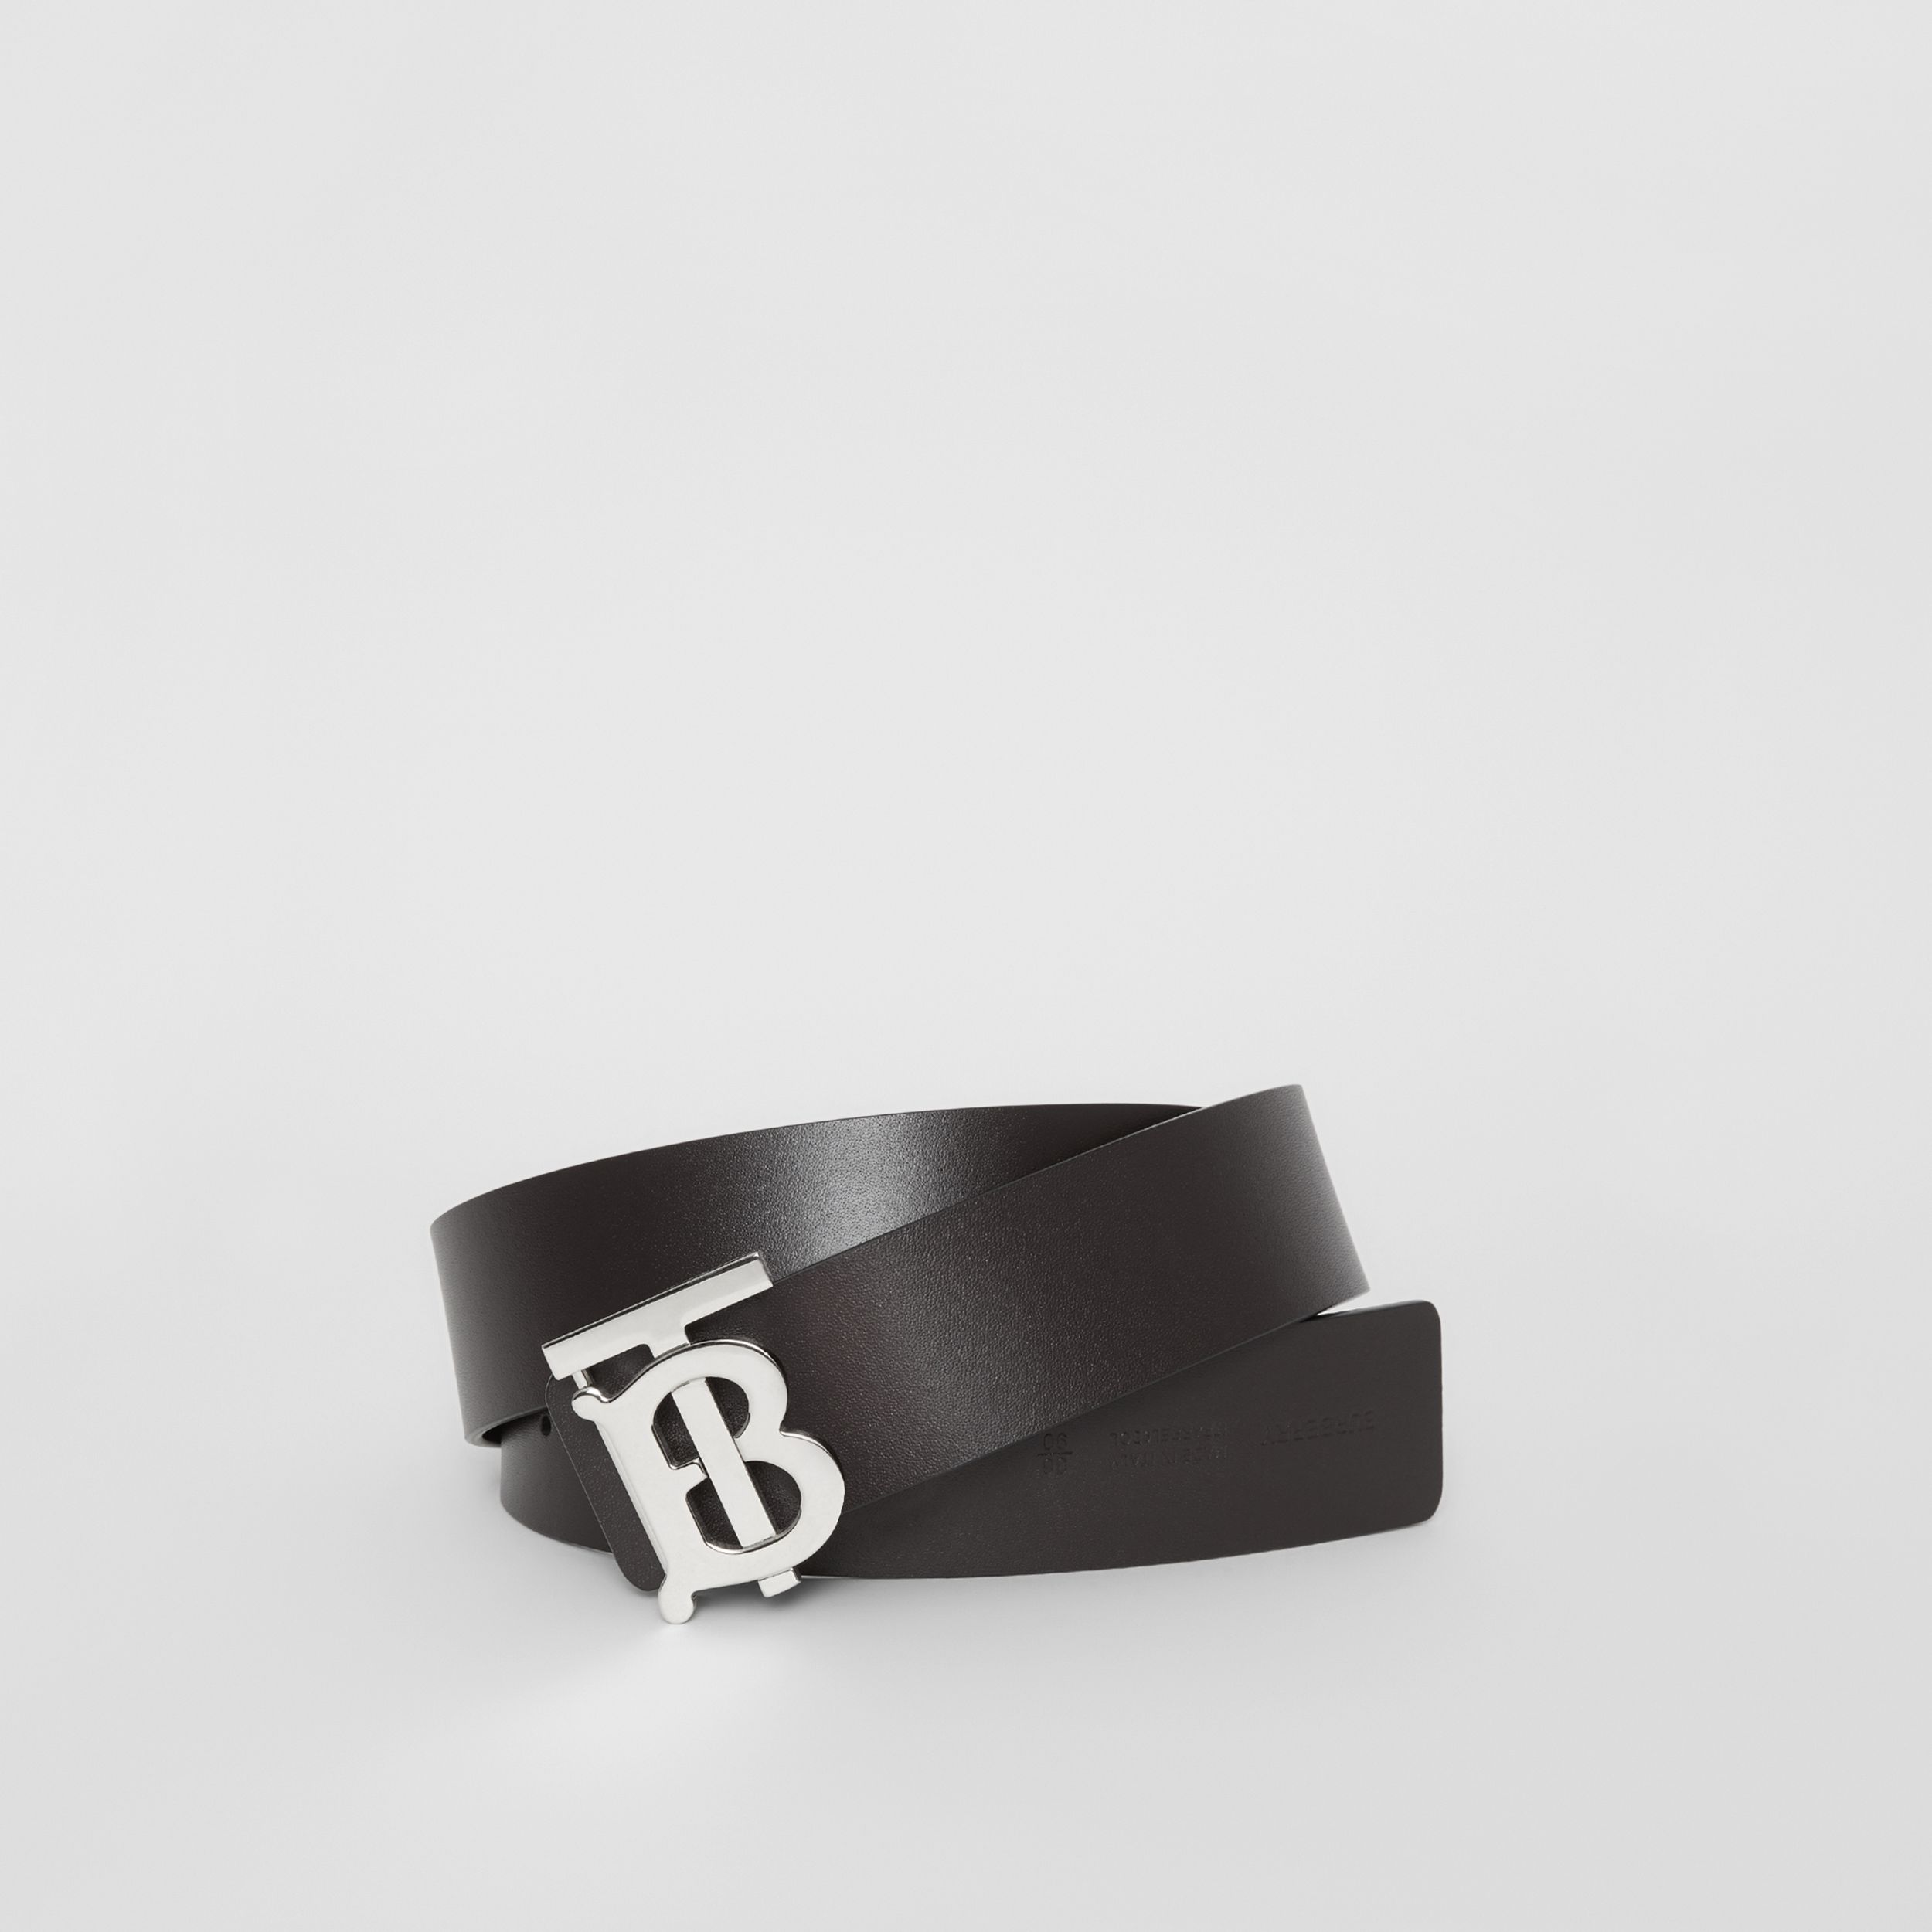 Reversible Monogram Motif Leather Belt in Black/malt Brown - Men | Burberry Australia - 1